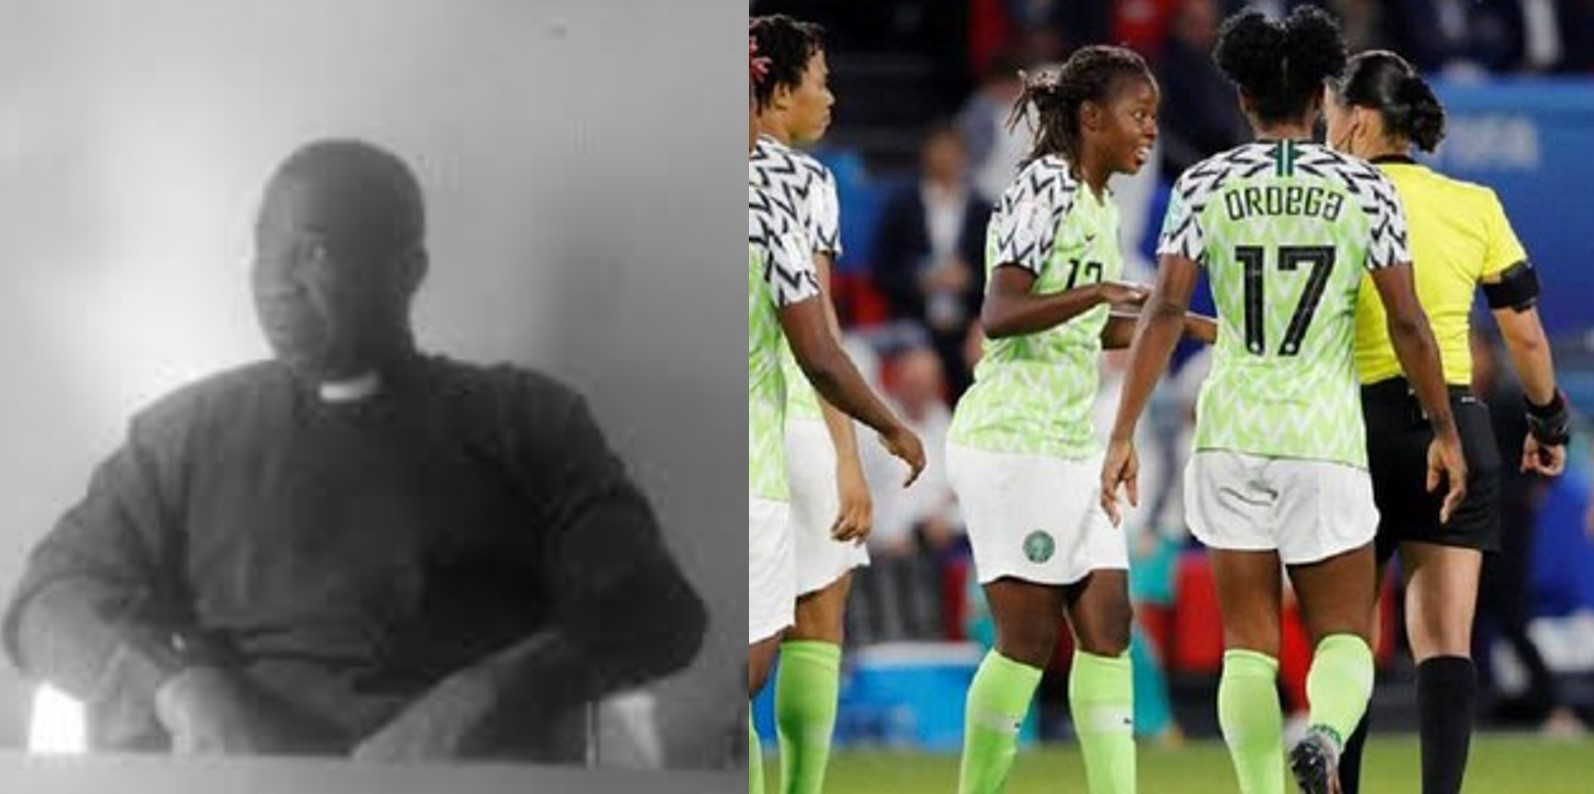 Enbonyi based pastor who predicted that the Super Falcons will reach semi finals speaks out, blames other spirits